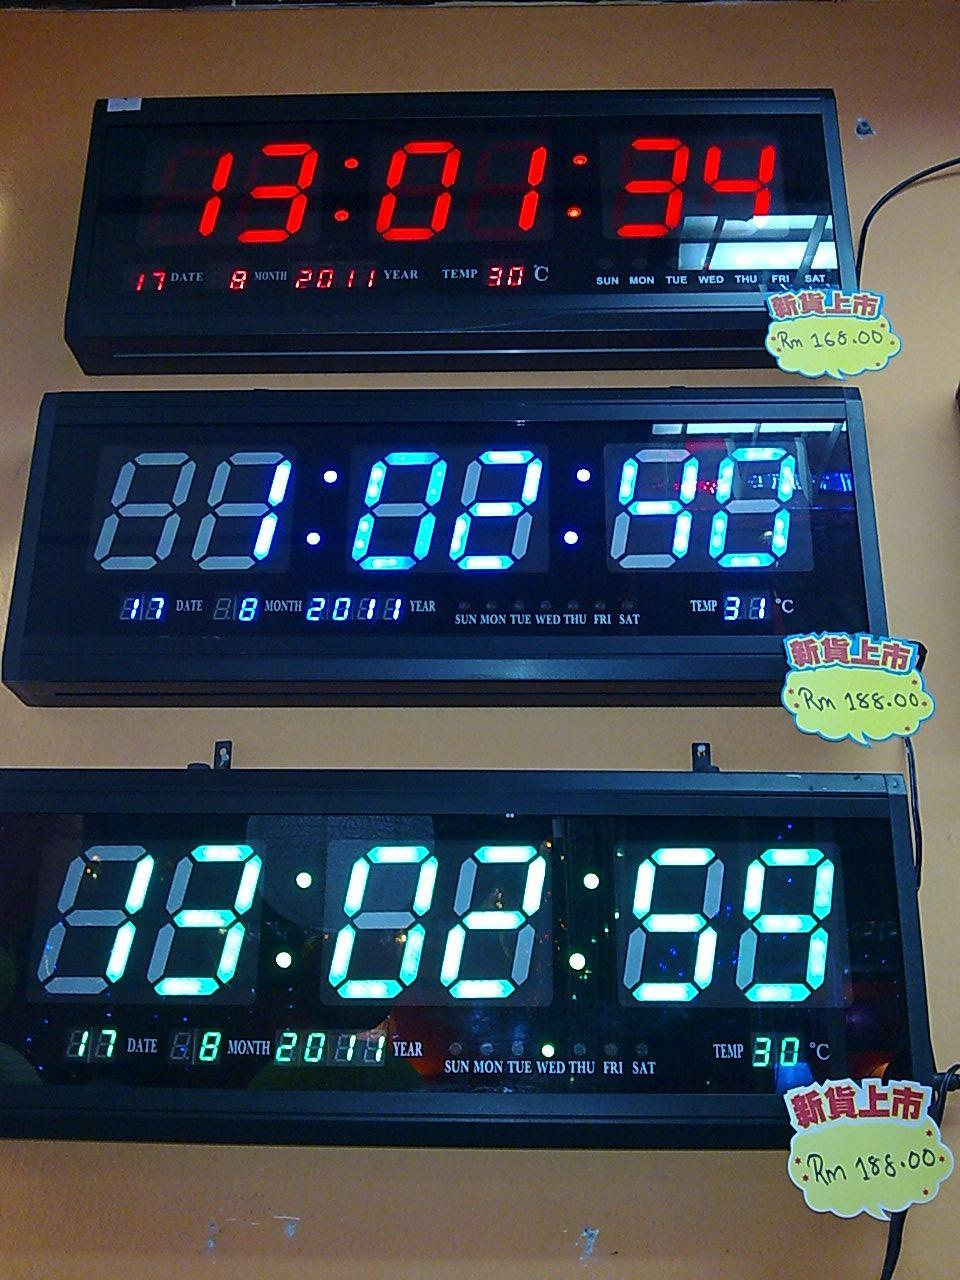 Digital led wall clock auto calenda end 12 27 2017 5 15 pm Digital led wall clock